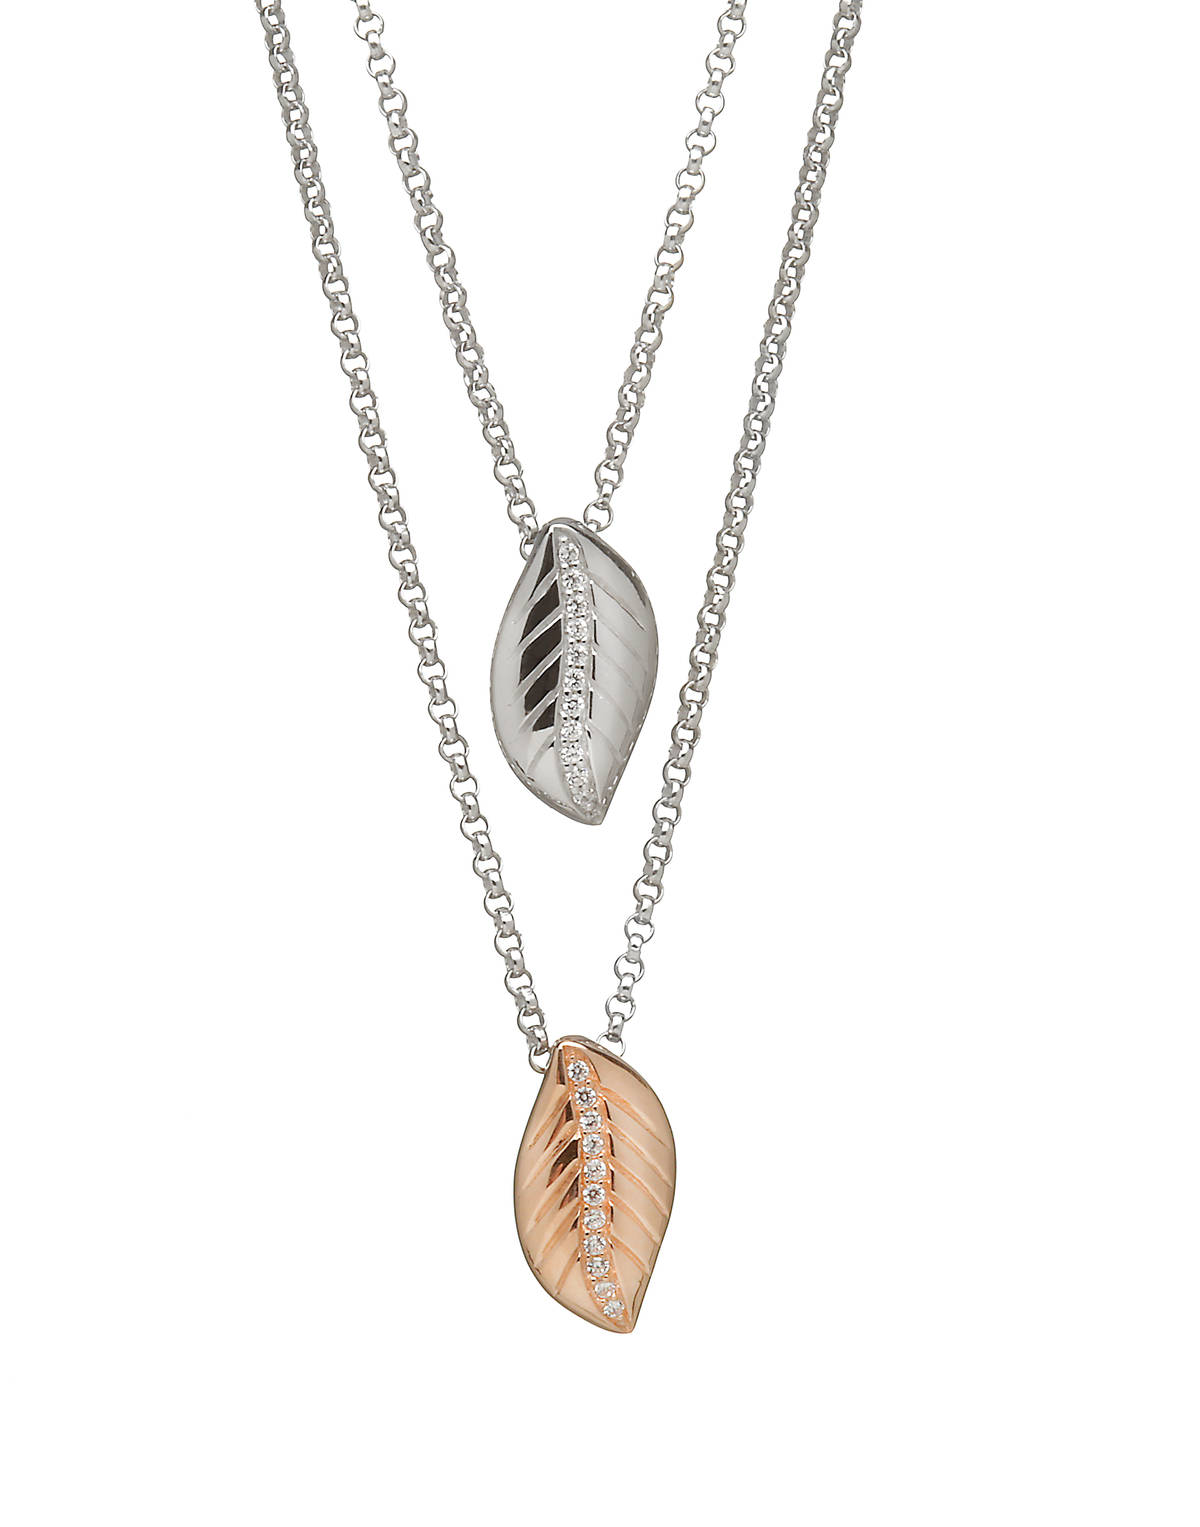 House of Lor silver/rose gold double leaf pendant bottom leaf made from rare Irish golddonck/wocck